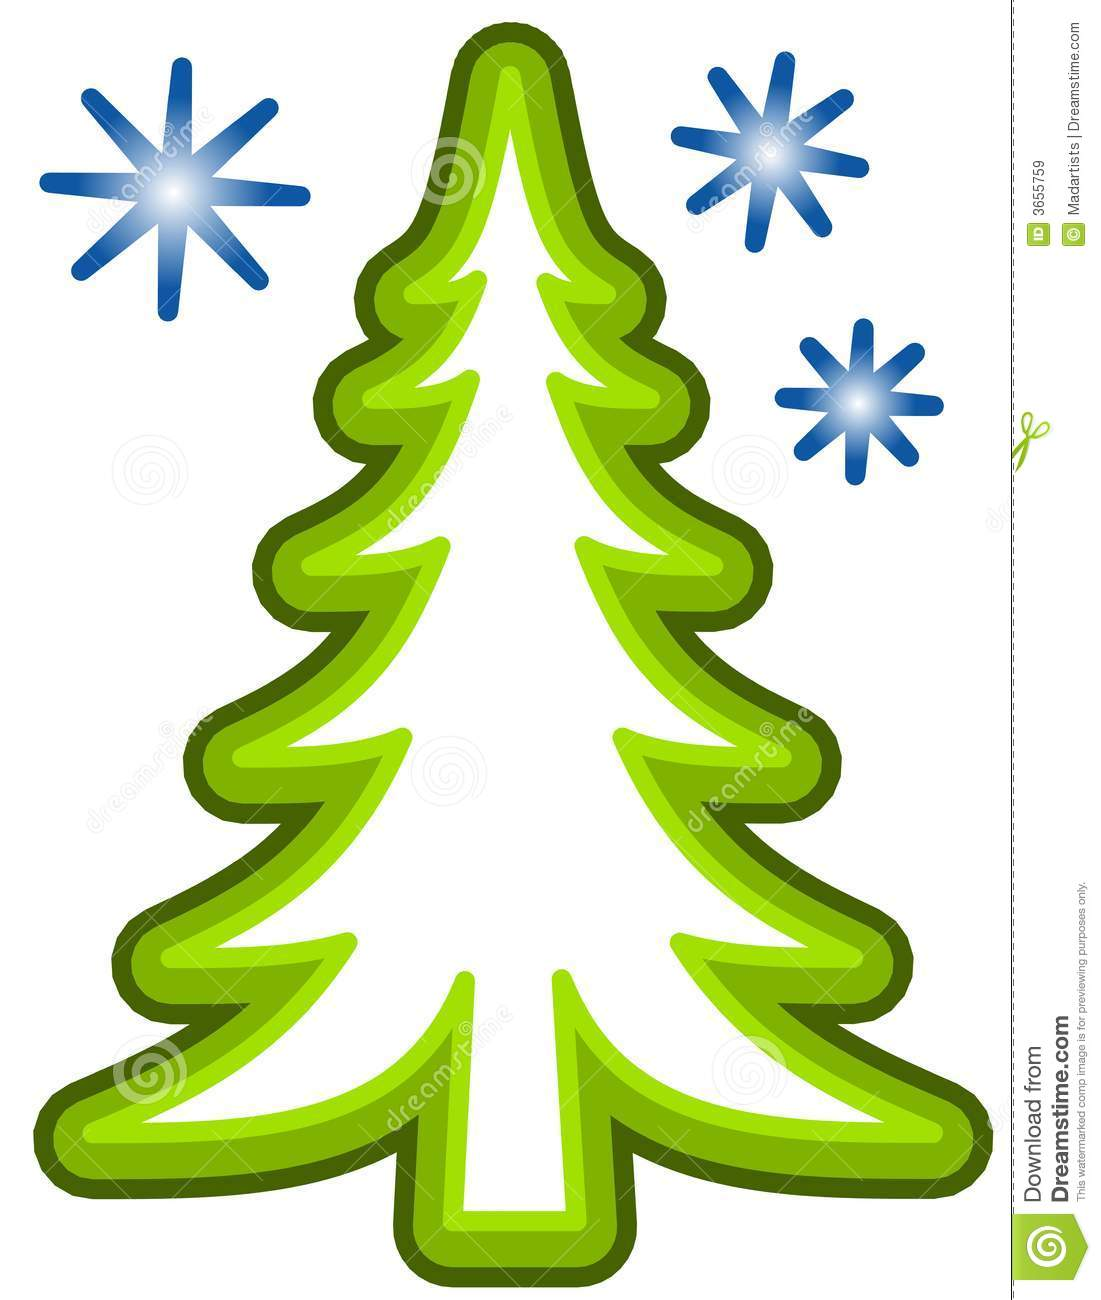 Christmas Tree Outline | Free download best Christmas Tree Outline ...